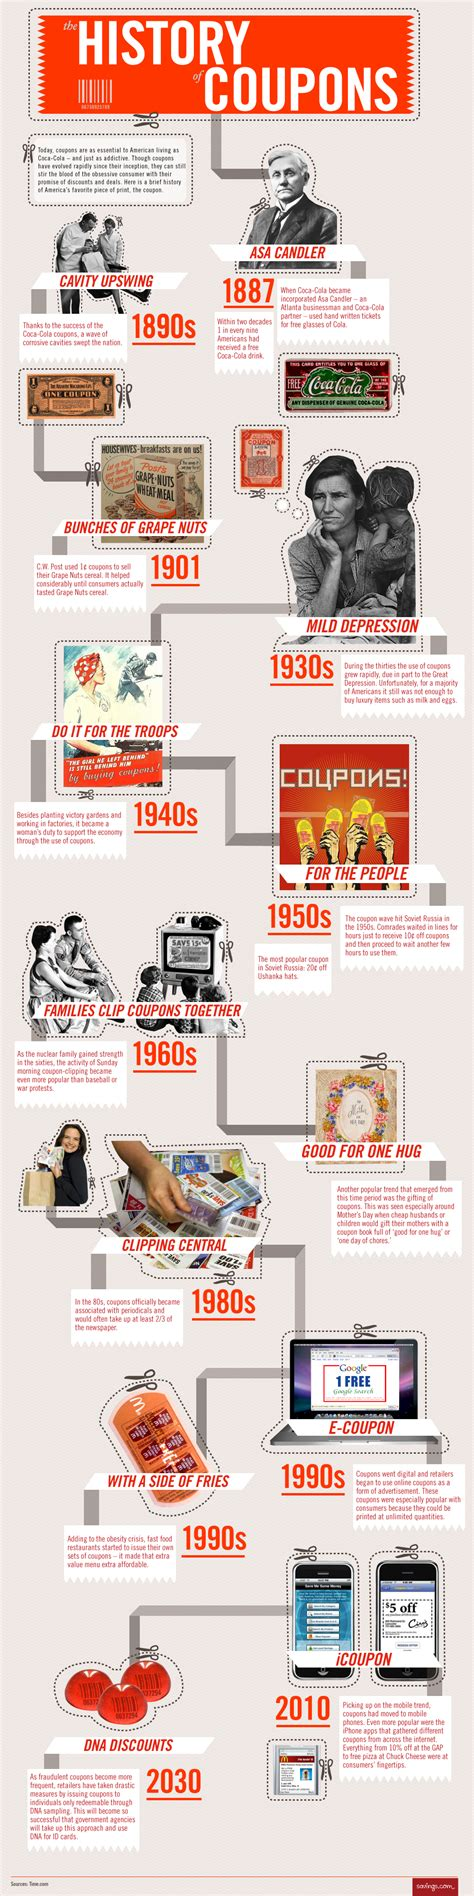 haircut coupons ta the history of coupons daily infographic